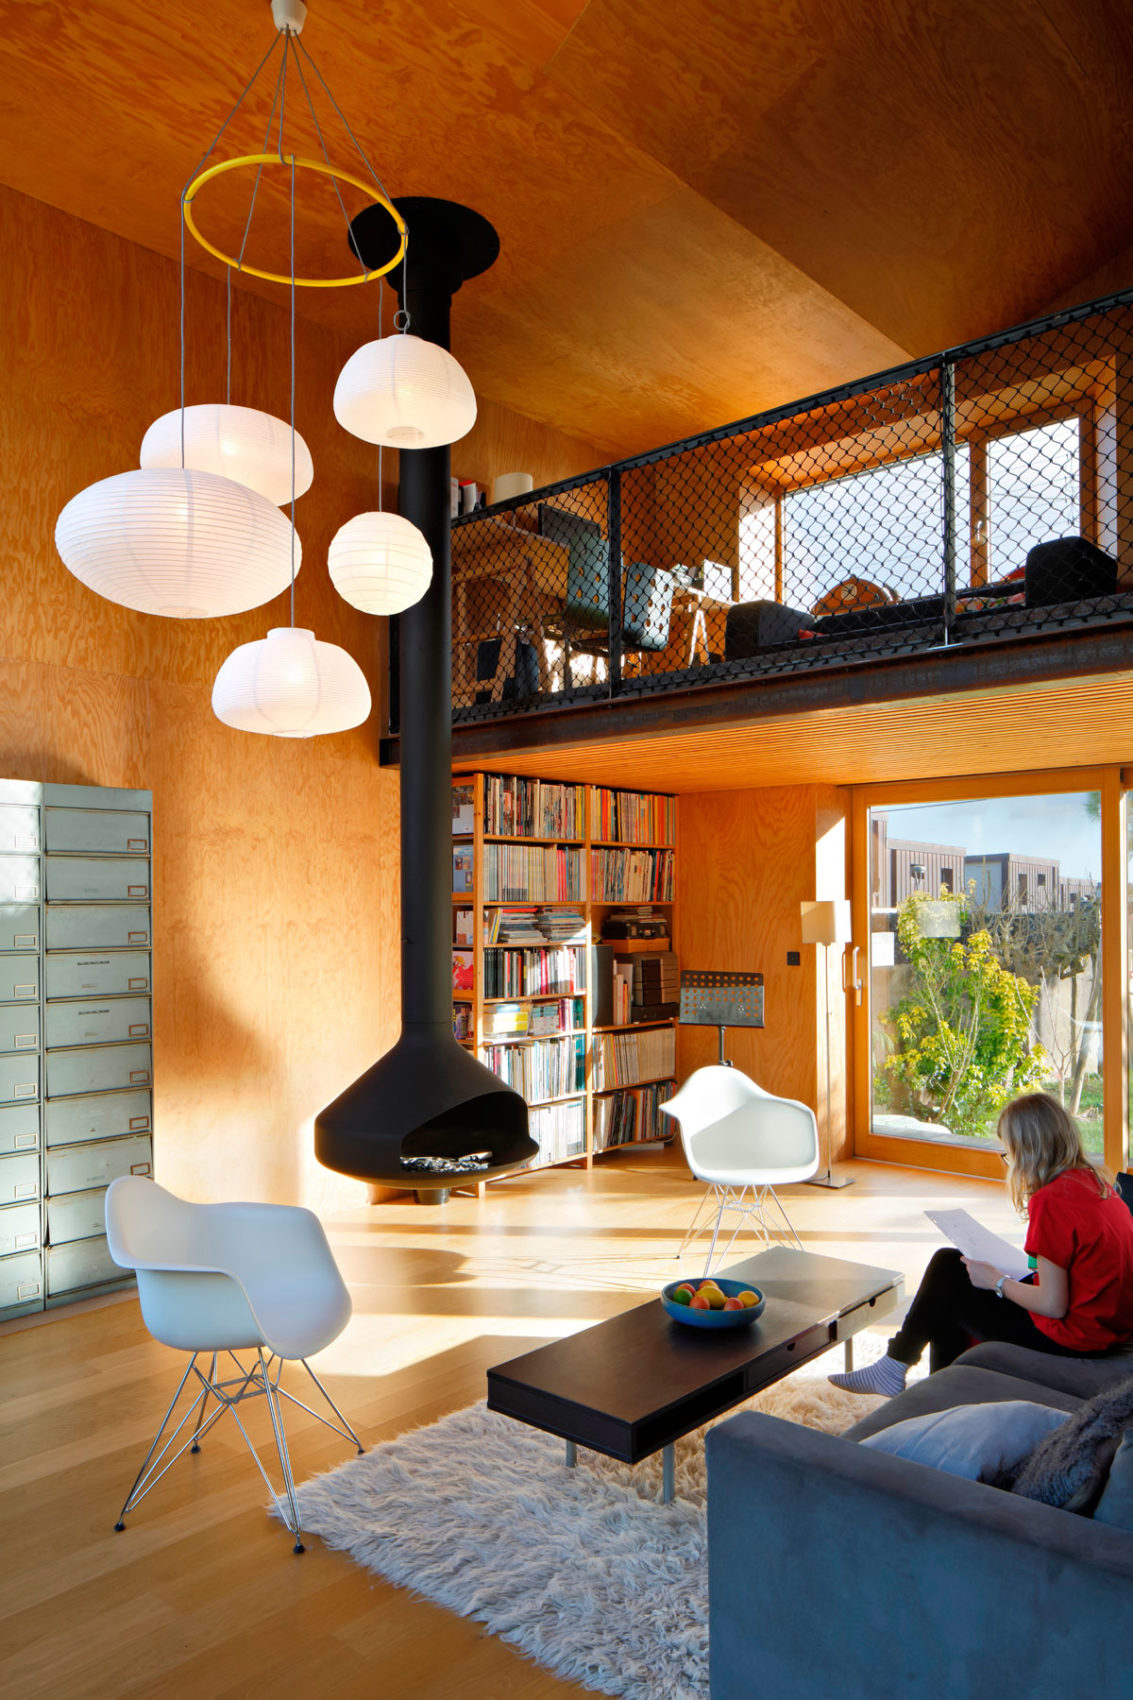 House Extension in Nantes by Mabire Reich Architects (17)